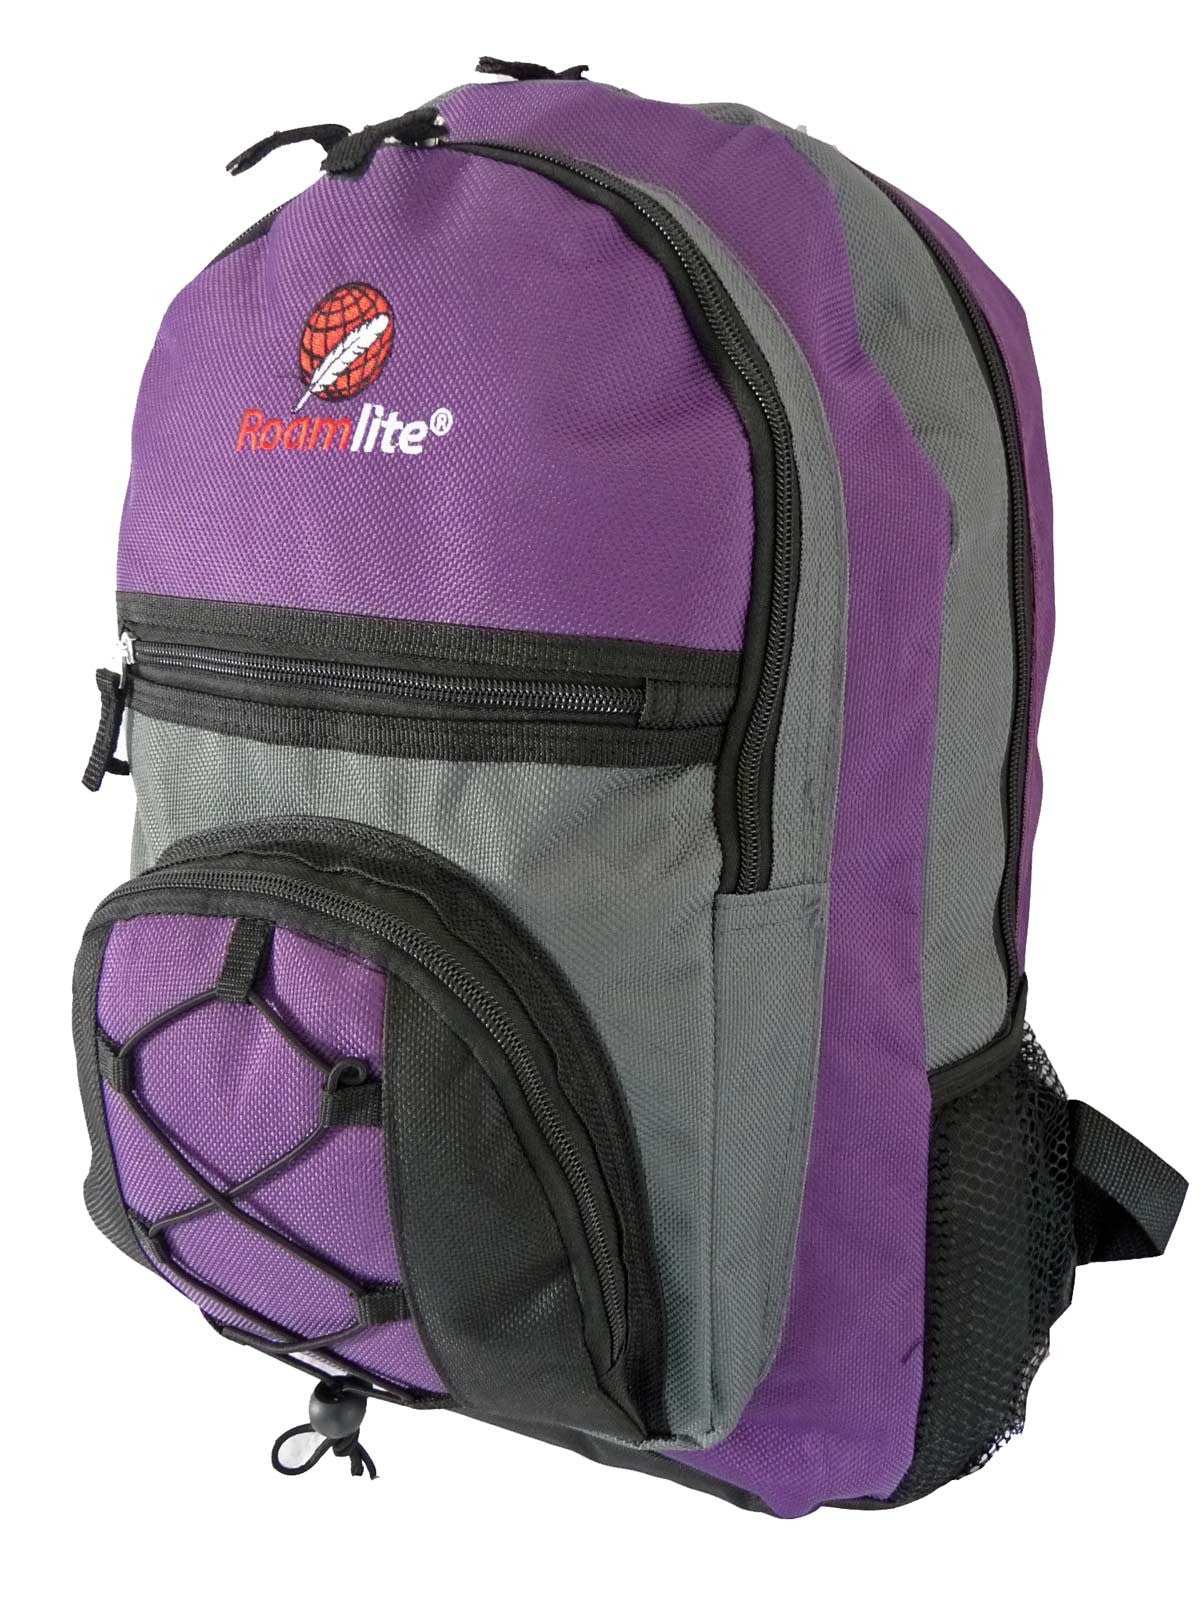 Kids School Bags RL37M Purple Side View